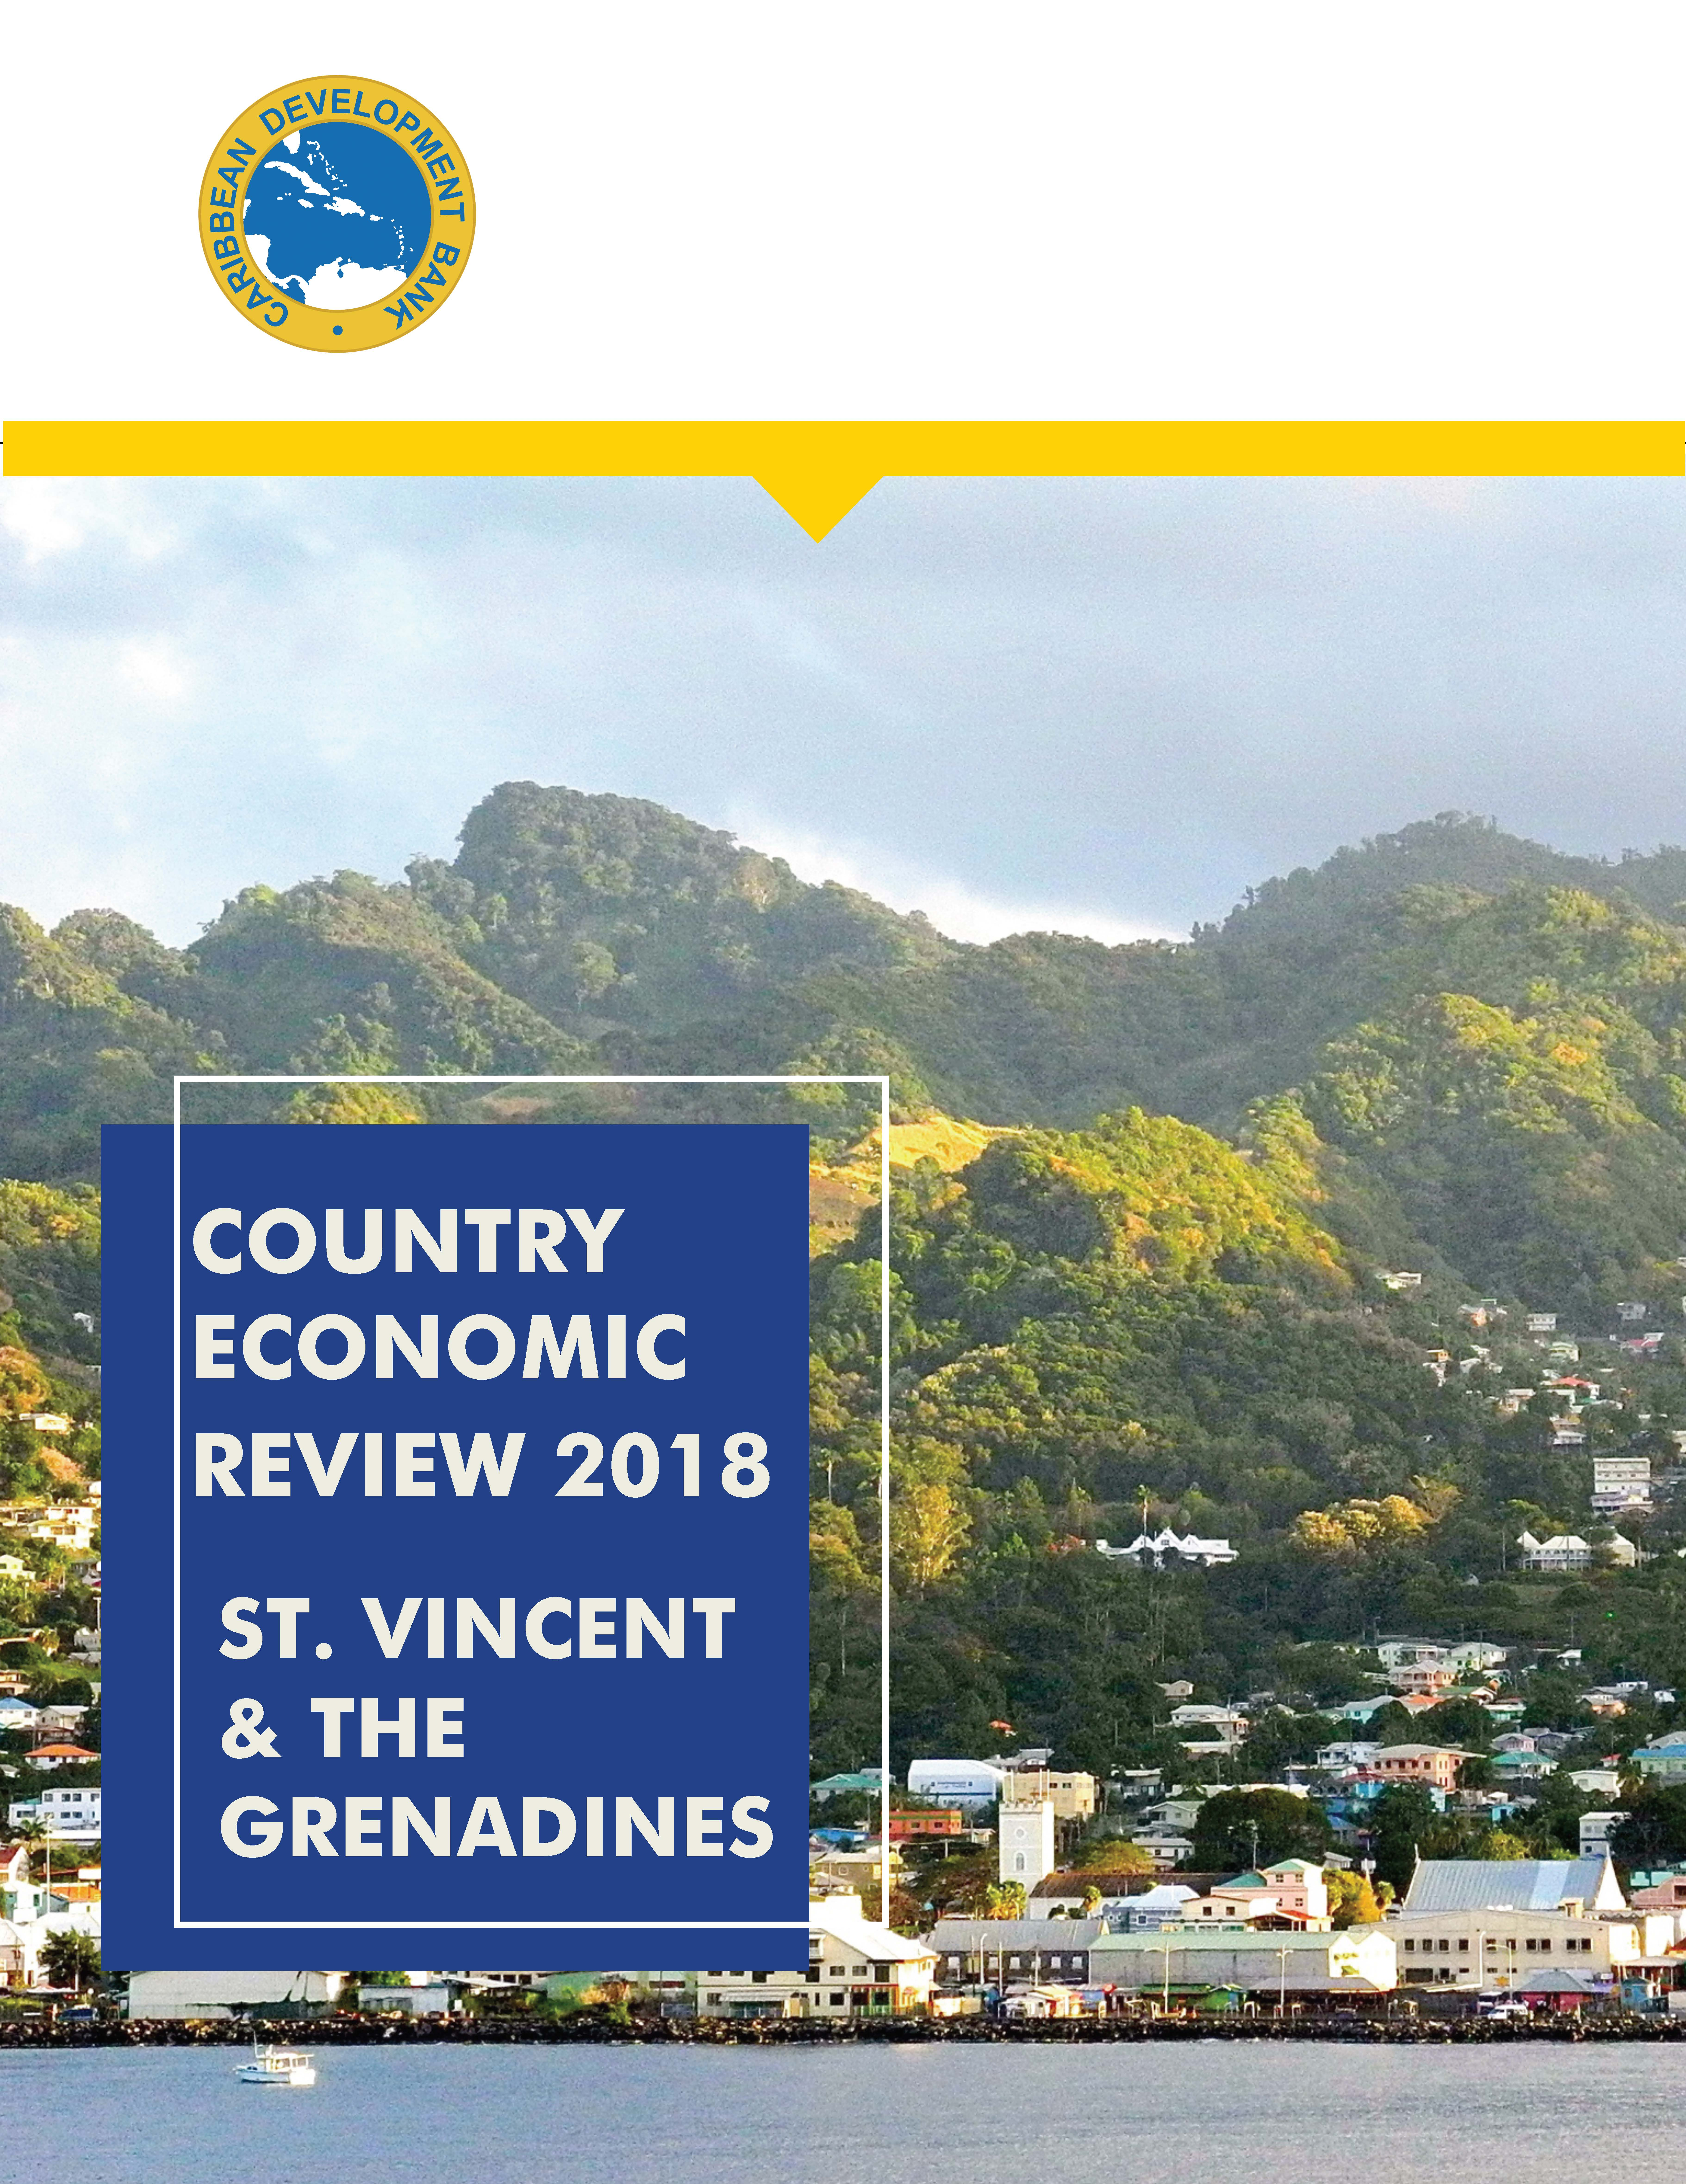 cover of 2018 Economic Review for St. Vincent and the Grenadines showing a view across the port and of the capital, Kingstown